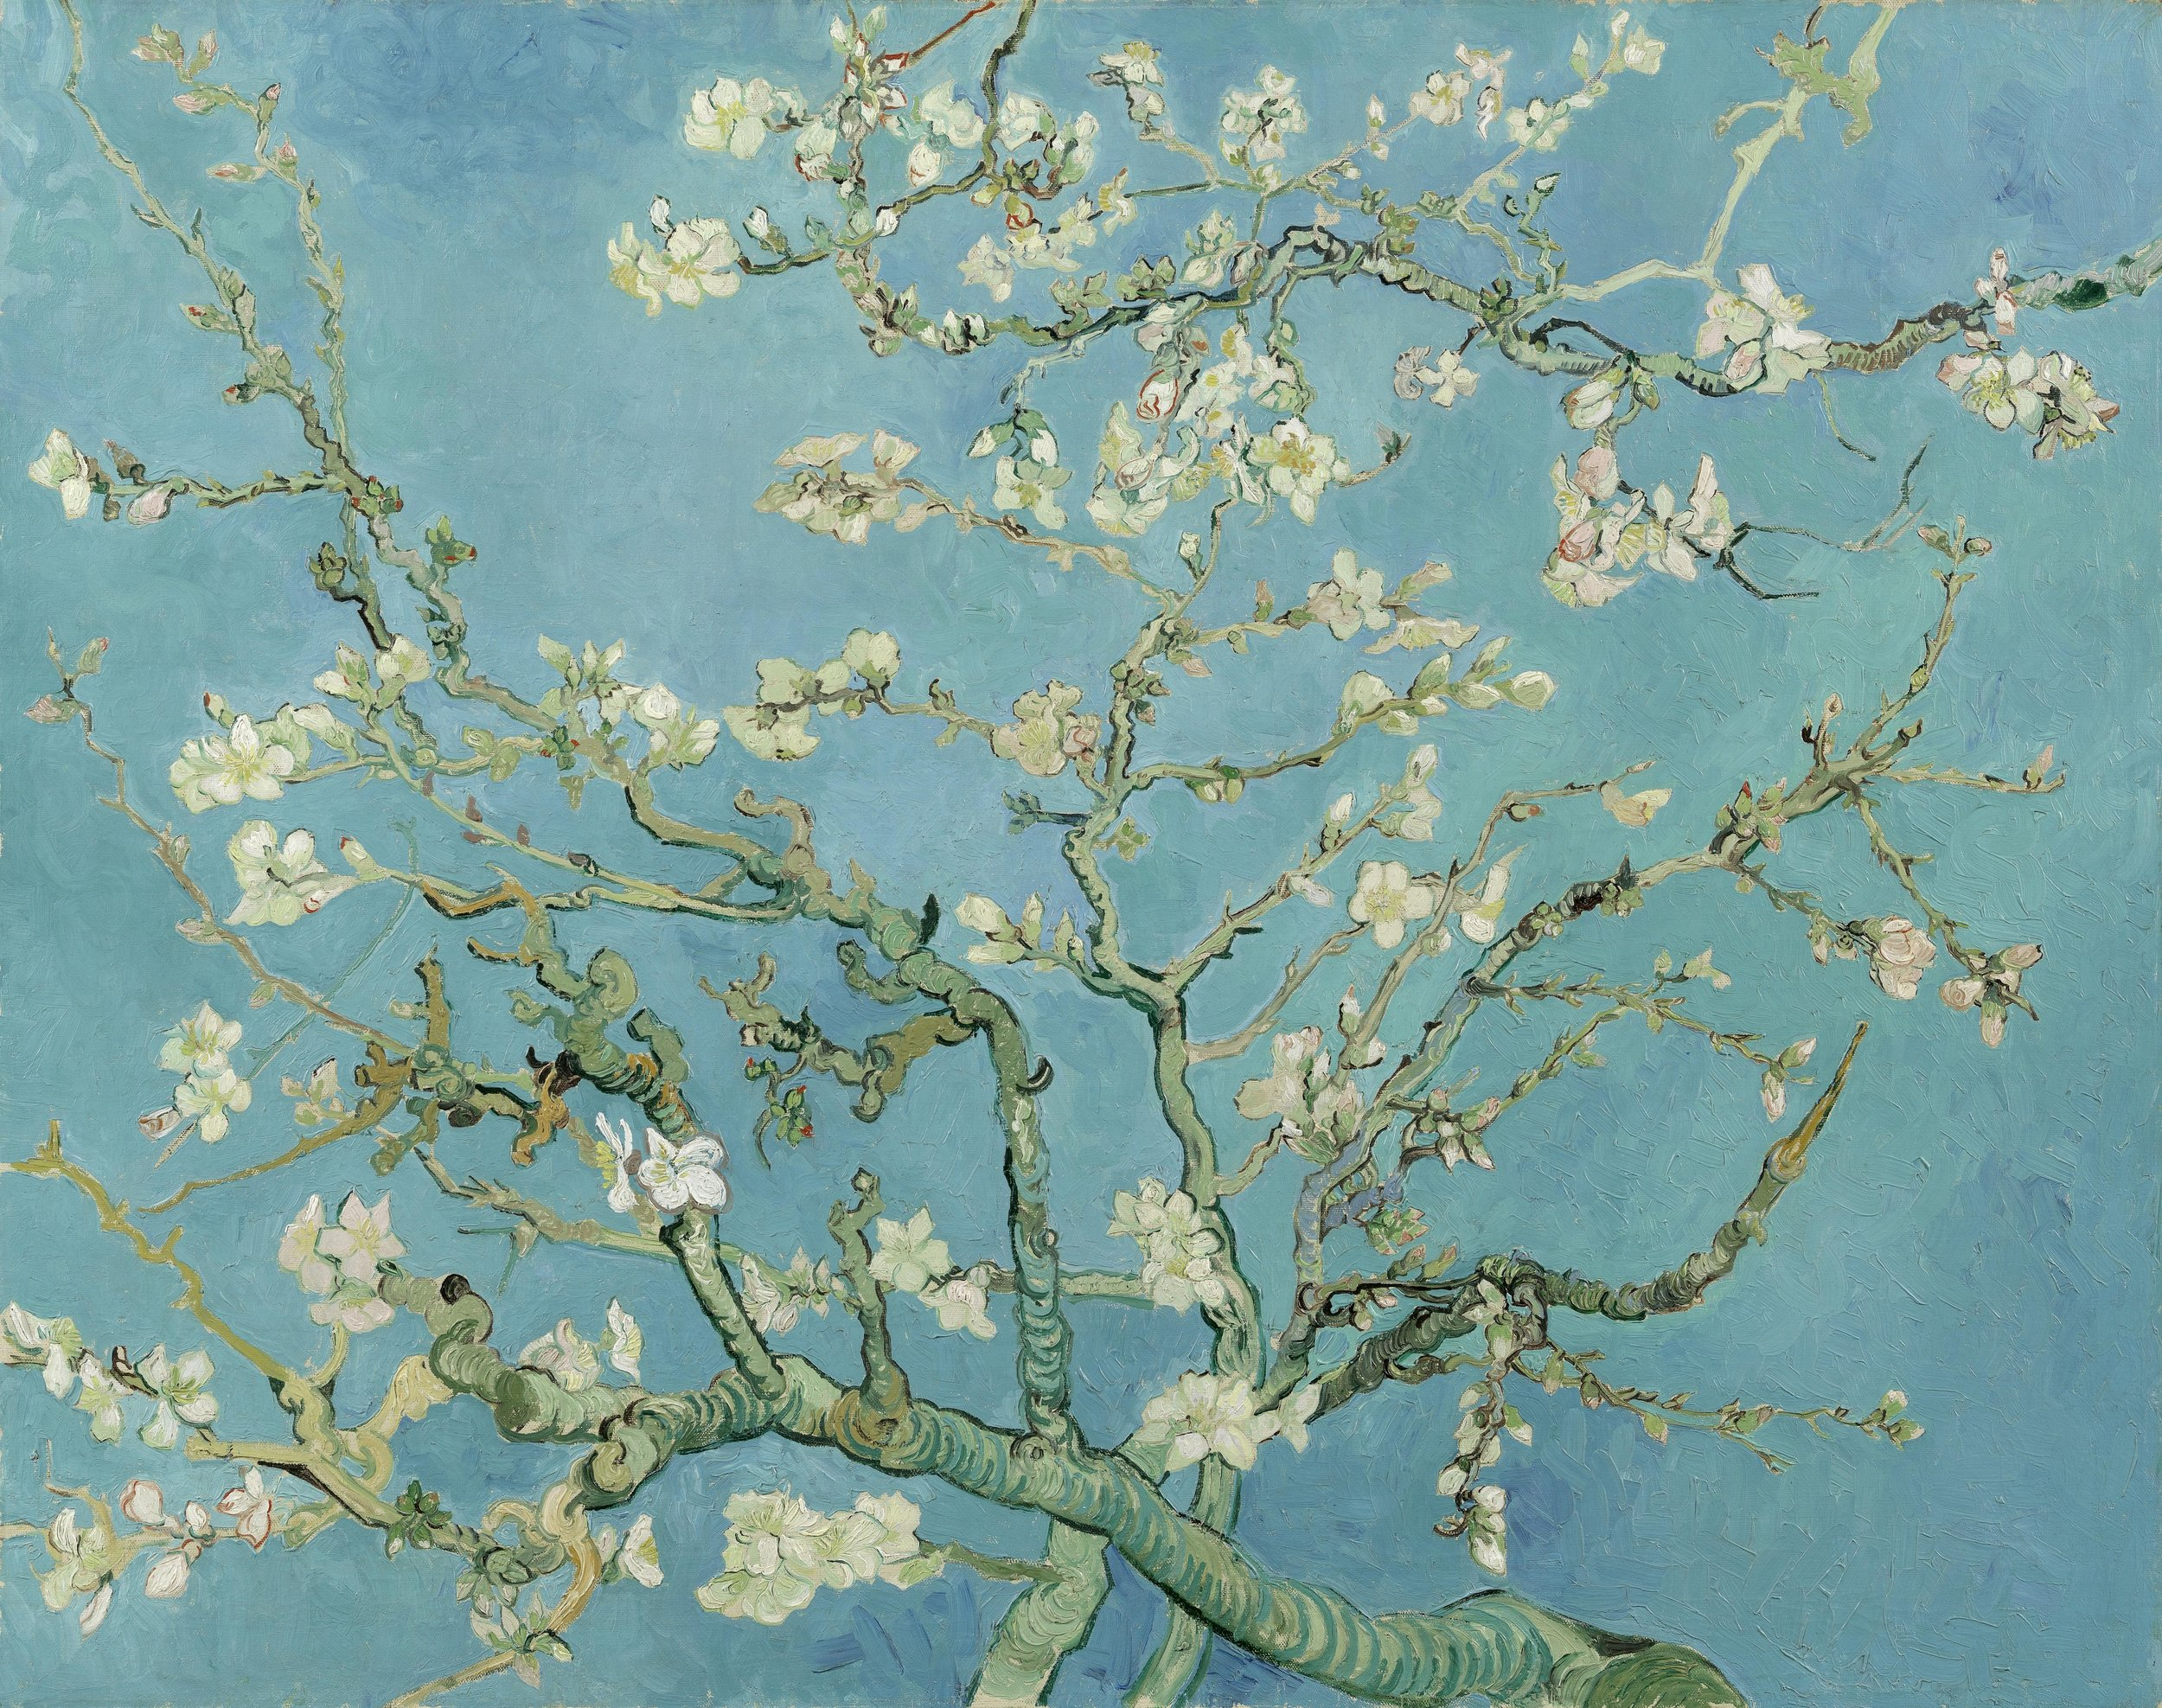 Almond Blossom,  Vincent van Gogh, 1890, oil on canvas.(Image courtesy of the Van Gogh Museum)